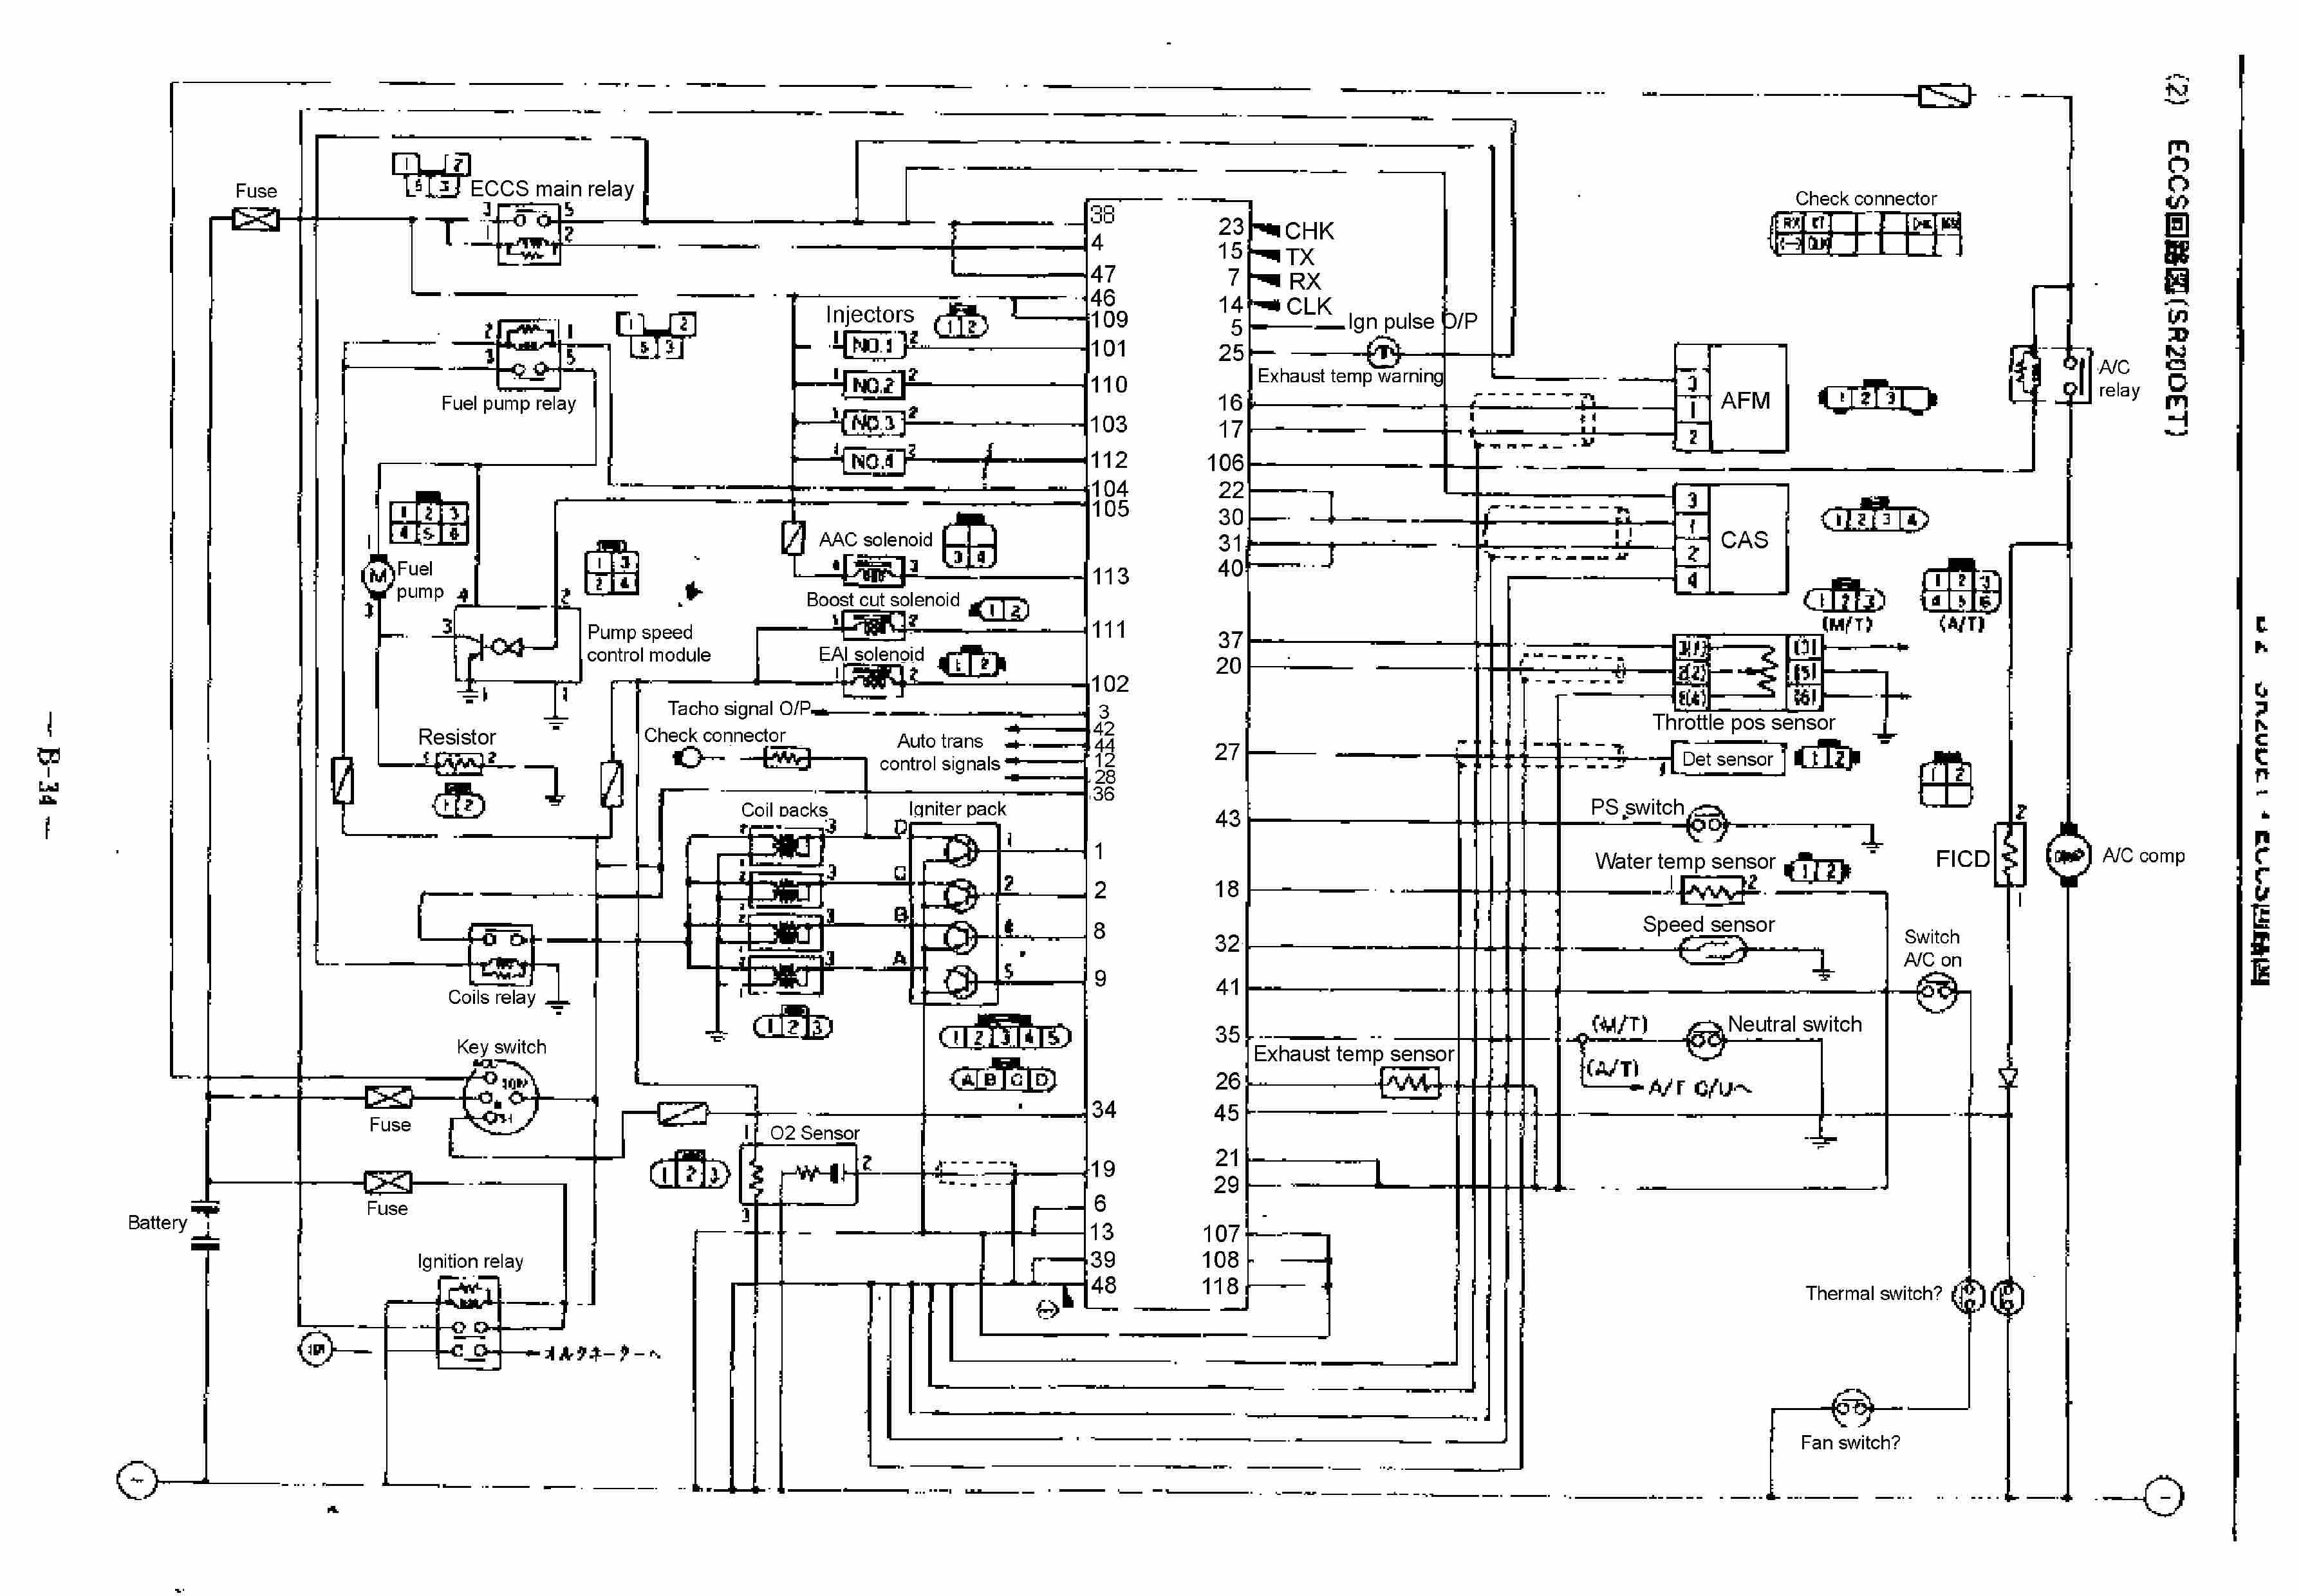 2005 Nissan Sentra Engine Diagram 0900c F5fd with Nissan Wiring Diagrams Newstongjl Of 2005 Nissan Sentra Engine Diagram